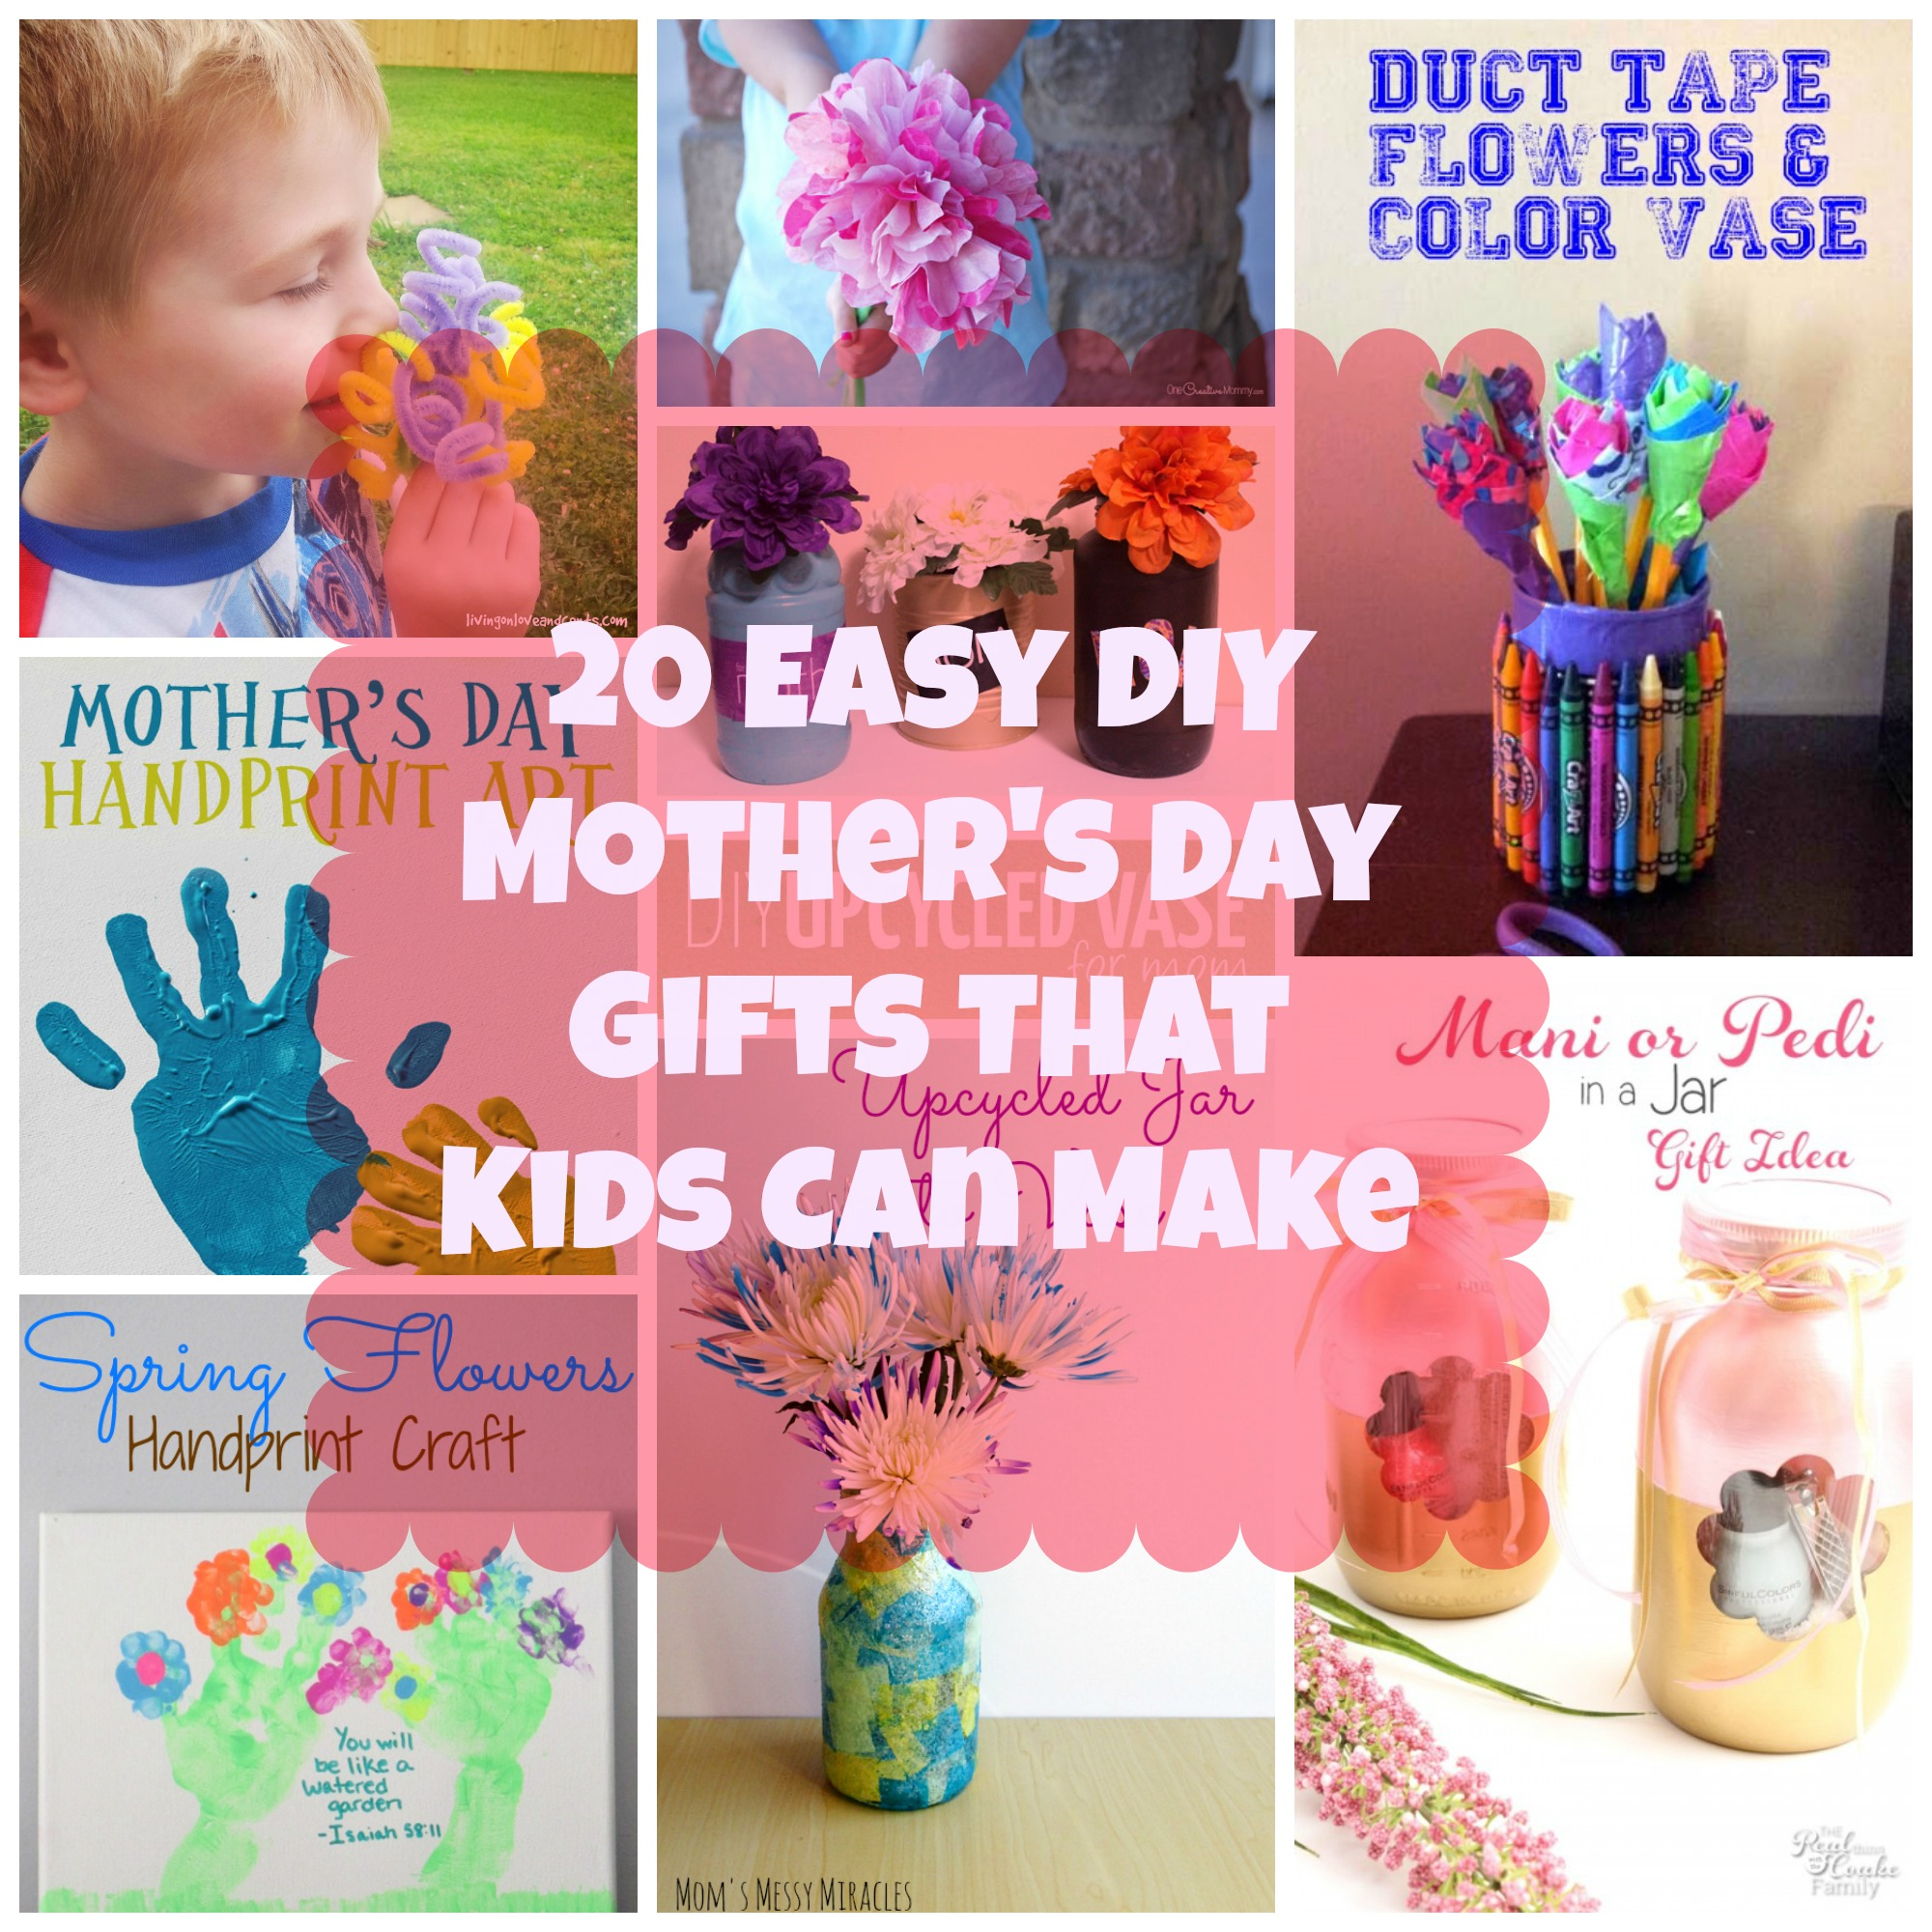 20 Easy Diy Mother S Day Gifts That Kids Can Make